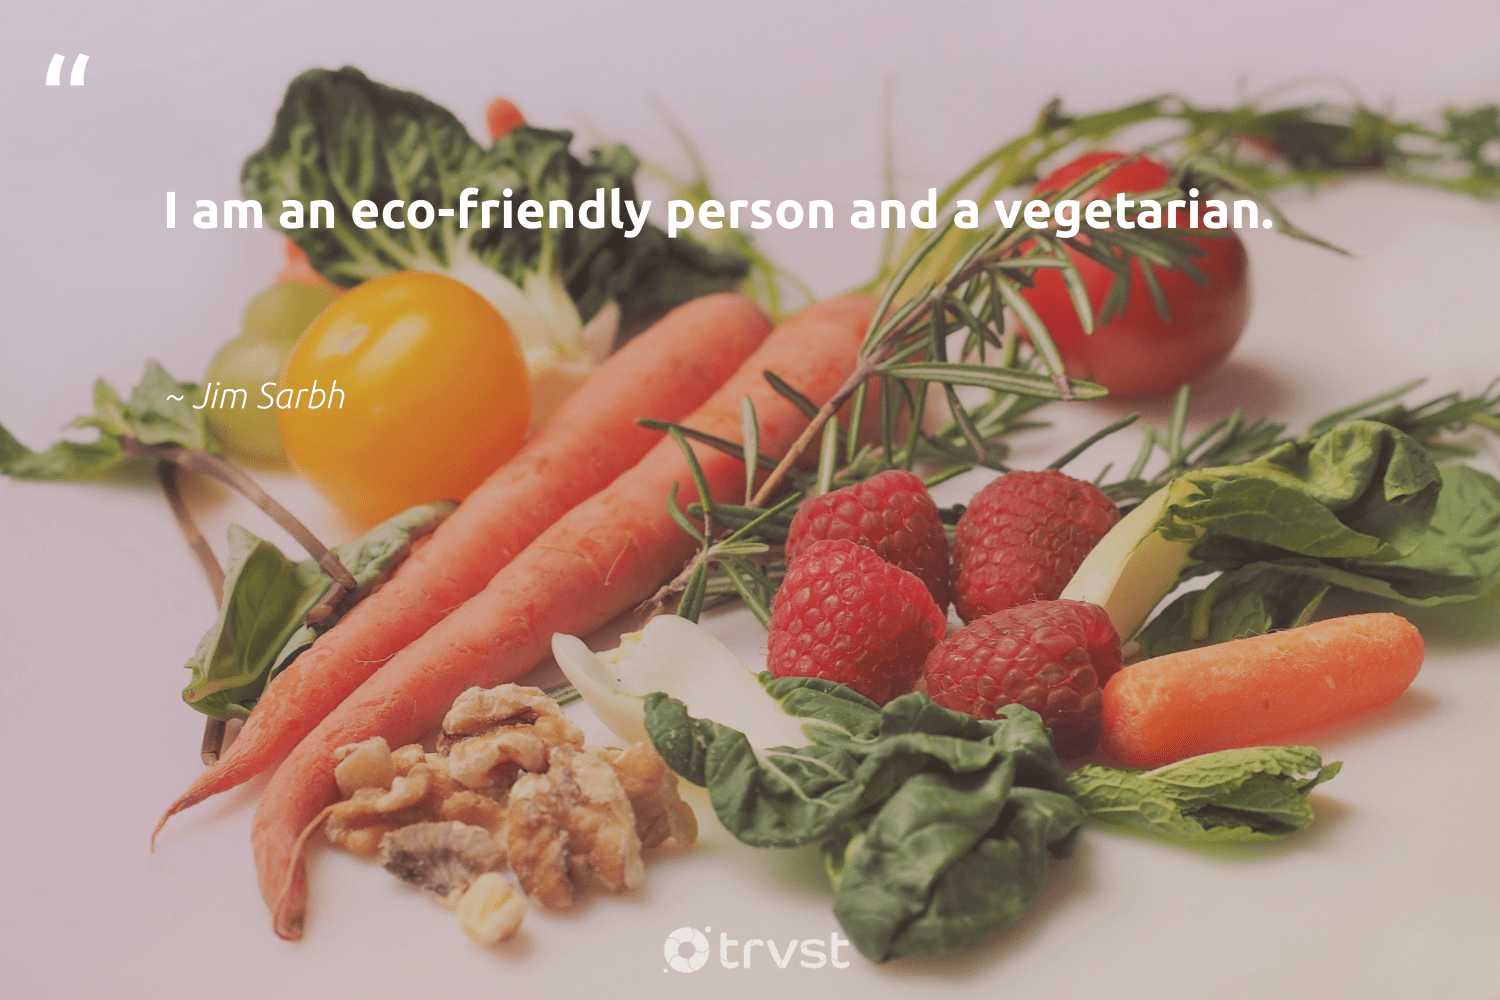 """""""I am an eco-friendly person and a vegetarian.""""  - Jim Sarbh #trvst #quotes #sustainability #ecofriendly #eco #vegetarian #sustainableliving #green #greenliving #socialchange #sustainable #fashion"""